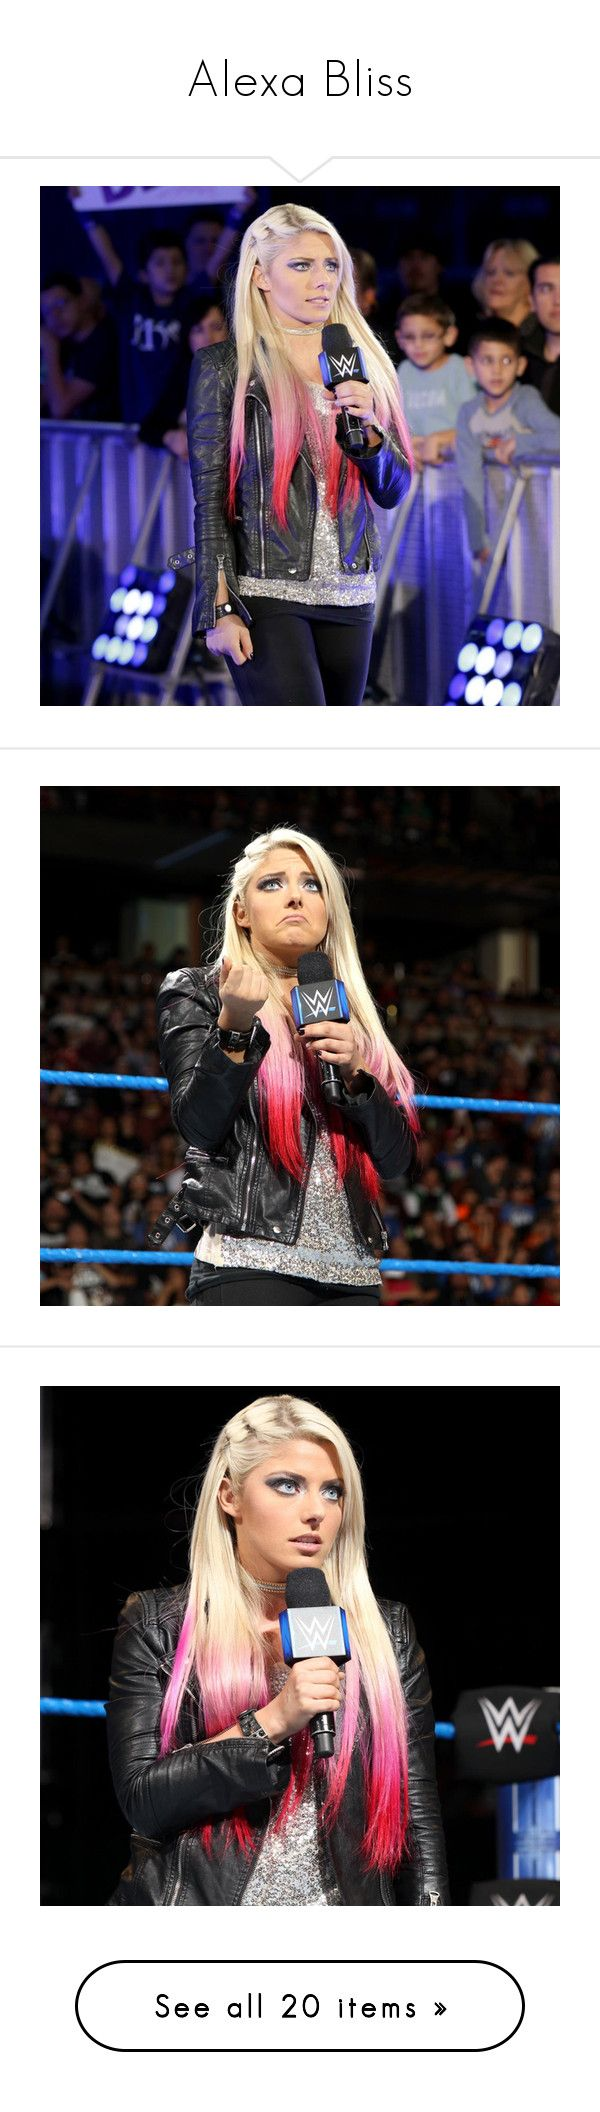 """""""Alexa Bliss"""" by amysykes-697 ❤ liked on Polyvore featuring wwe"""